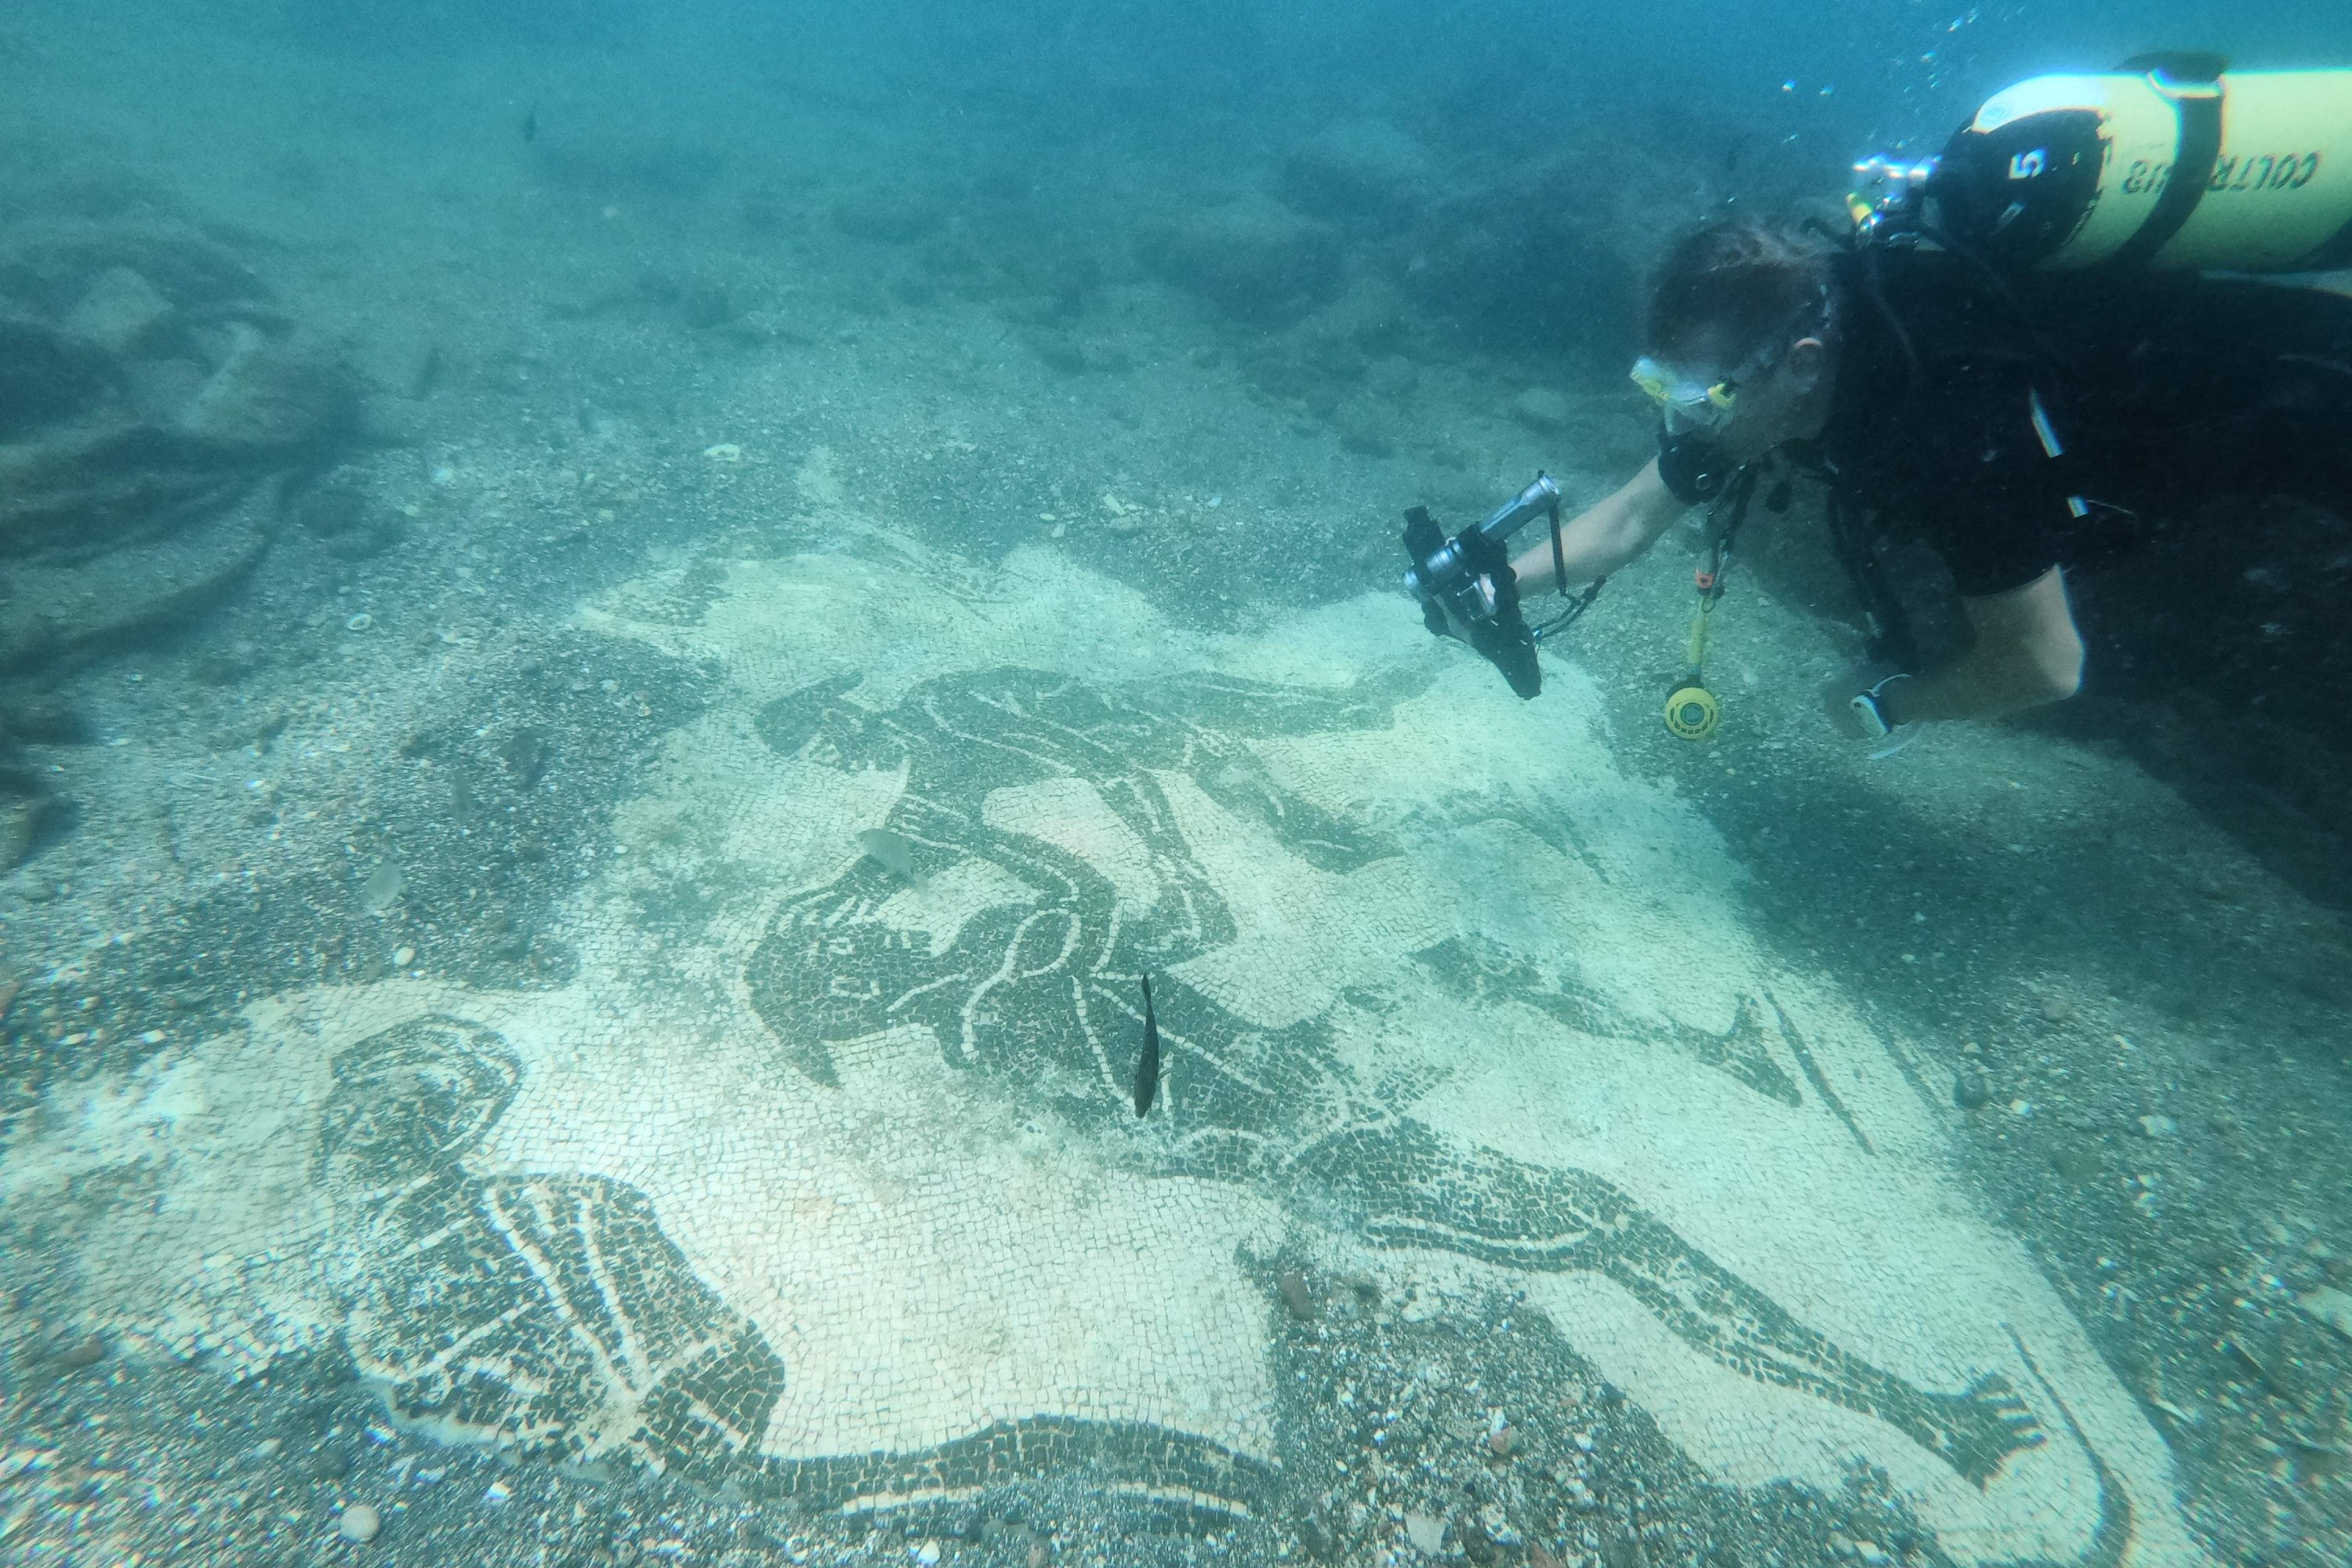 A dive guide shows tourists a mosaic from Villa a Protiro, in the submerged ancient Roman city of Baiae, Pozzuoli near Naples, Italy, Aug. 18, 2021. (AFP Photo)